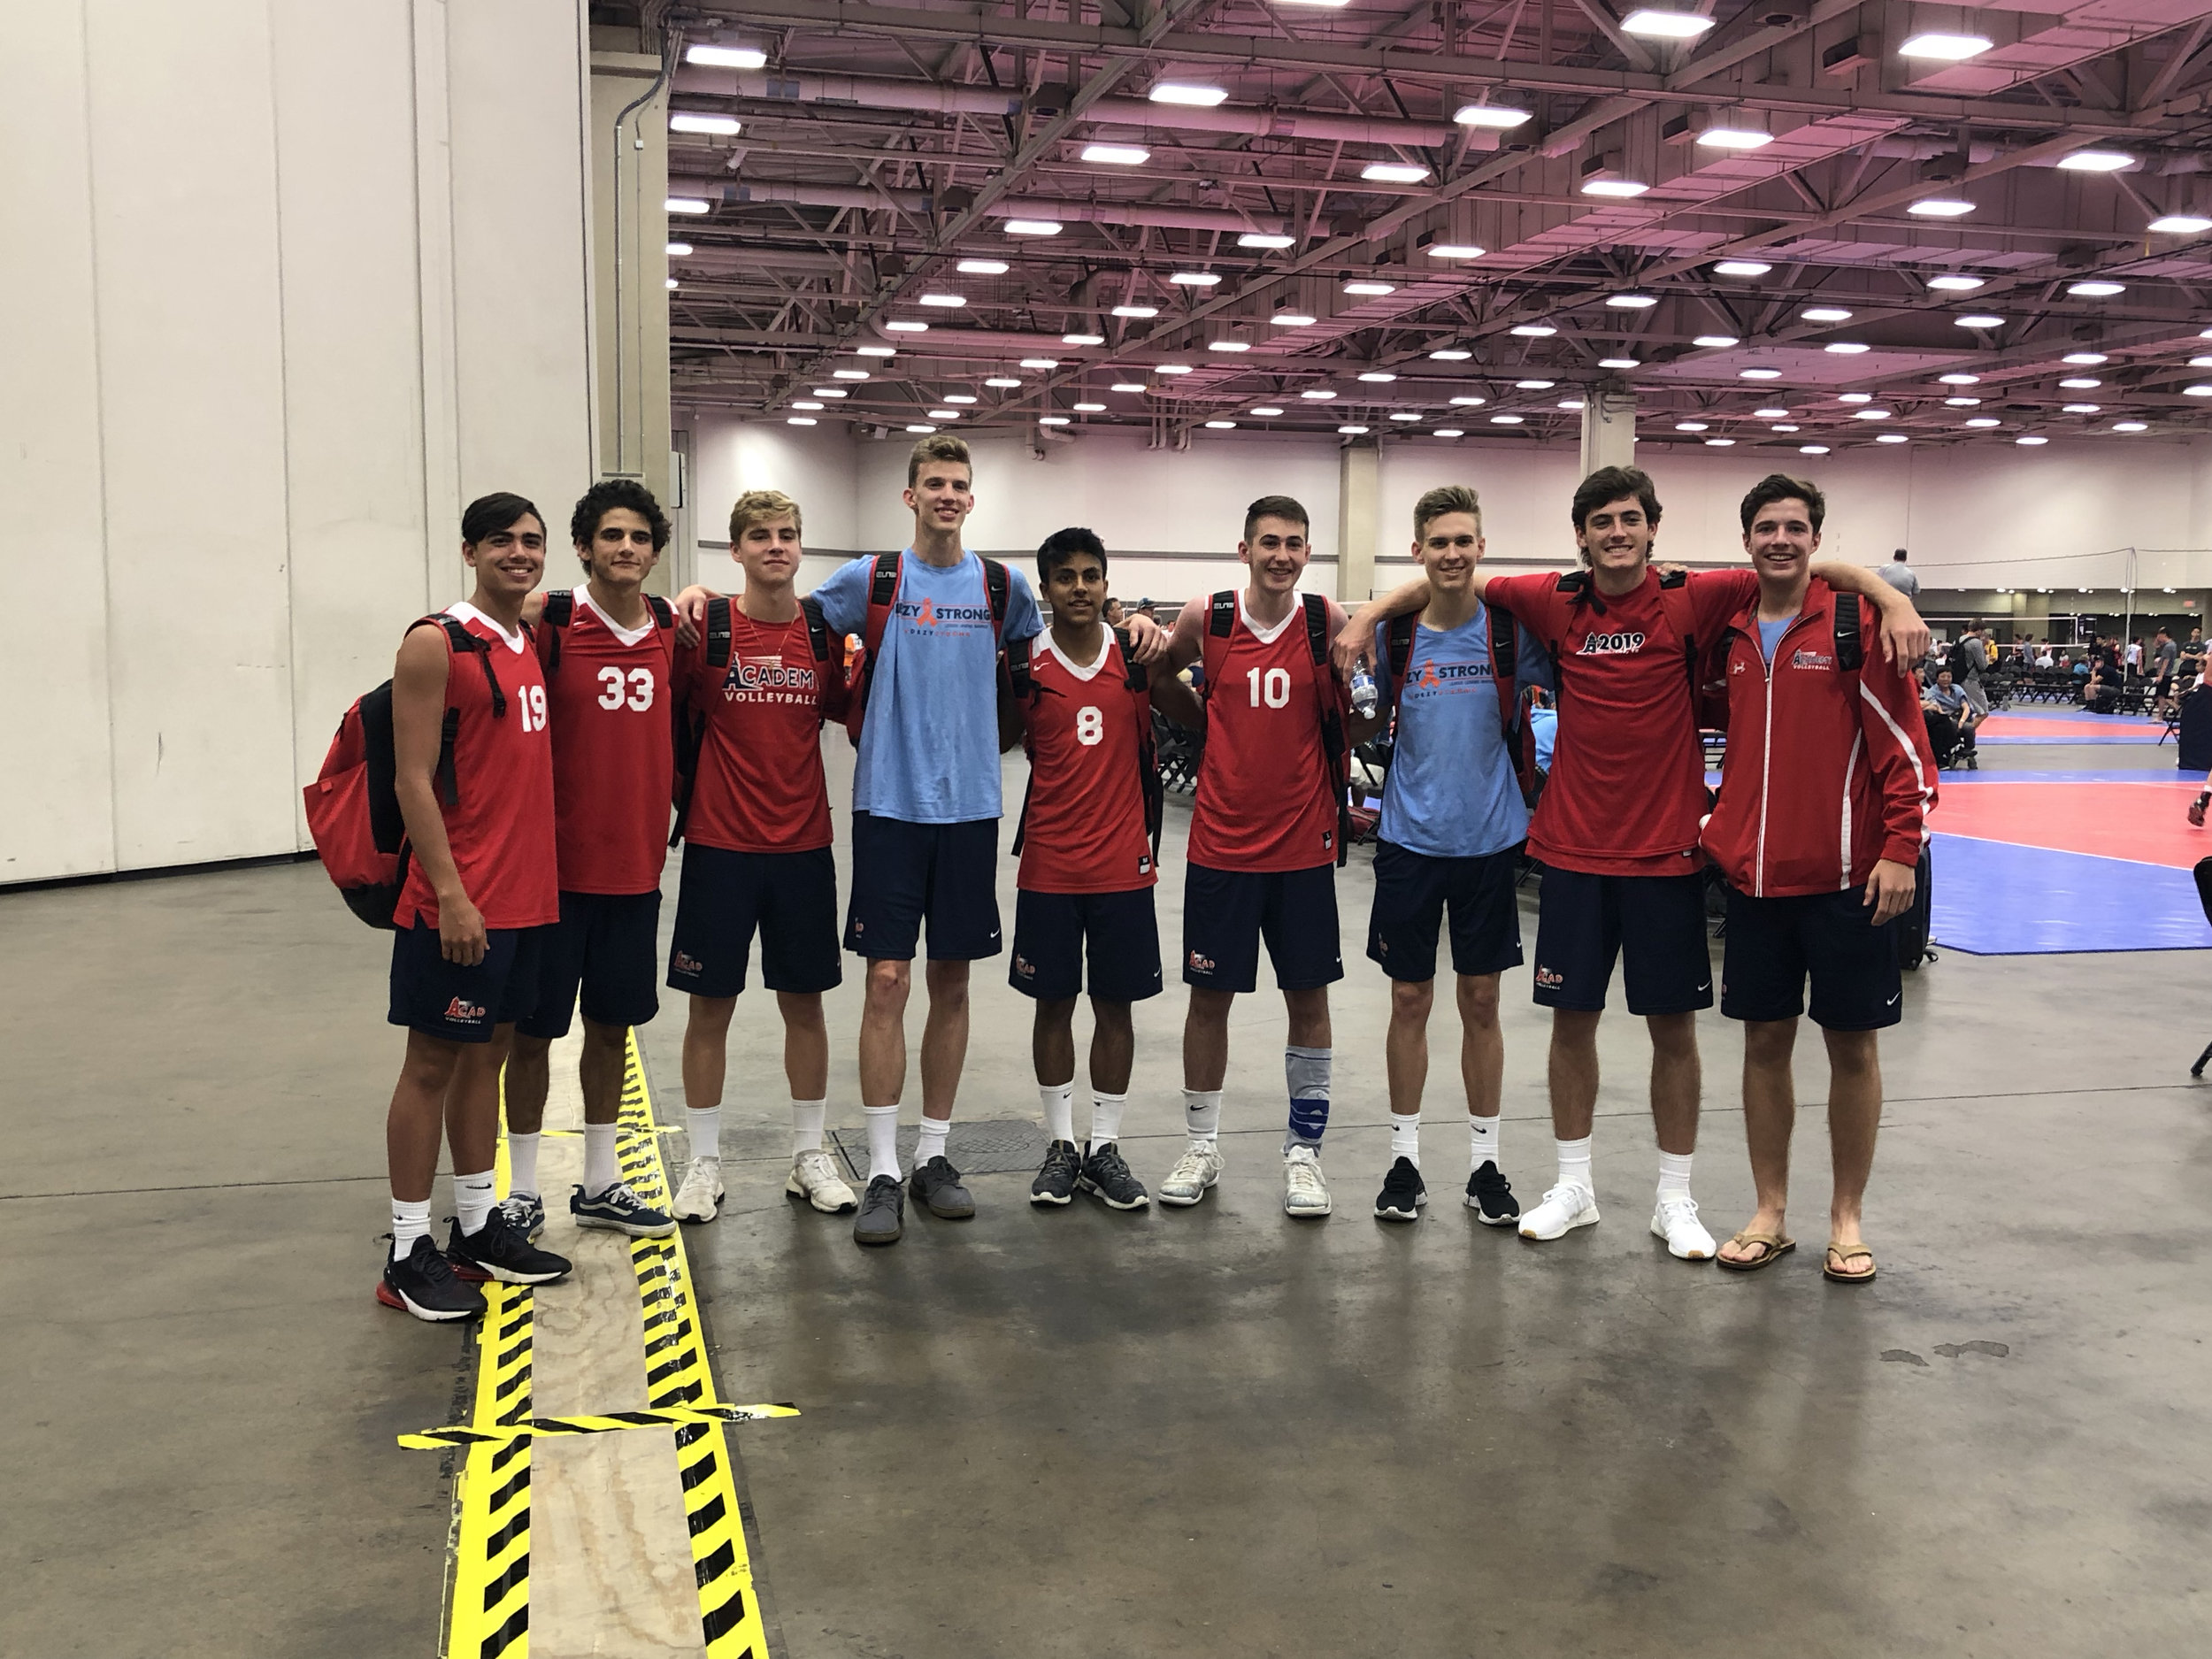 Last tournament for the Boys 18 Red, but will see you next year A-Trey/Trey-J (AJ & Trey)!